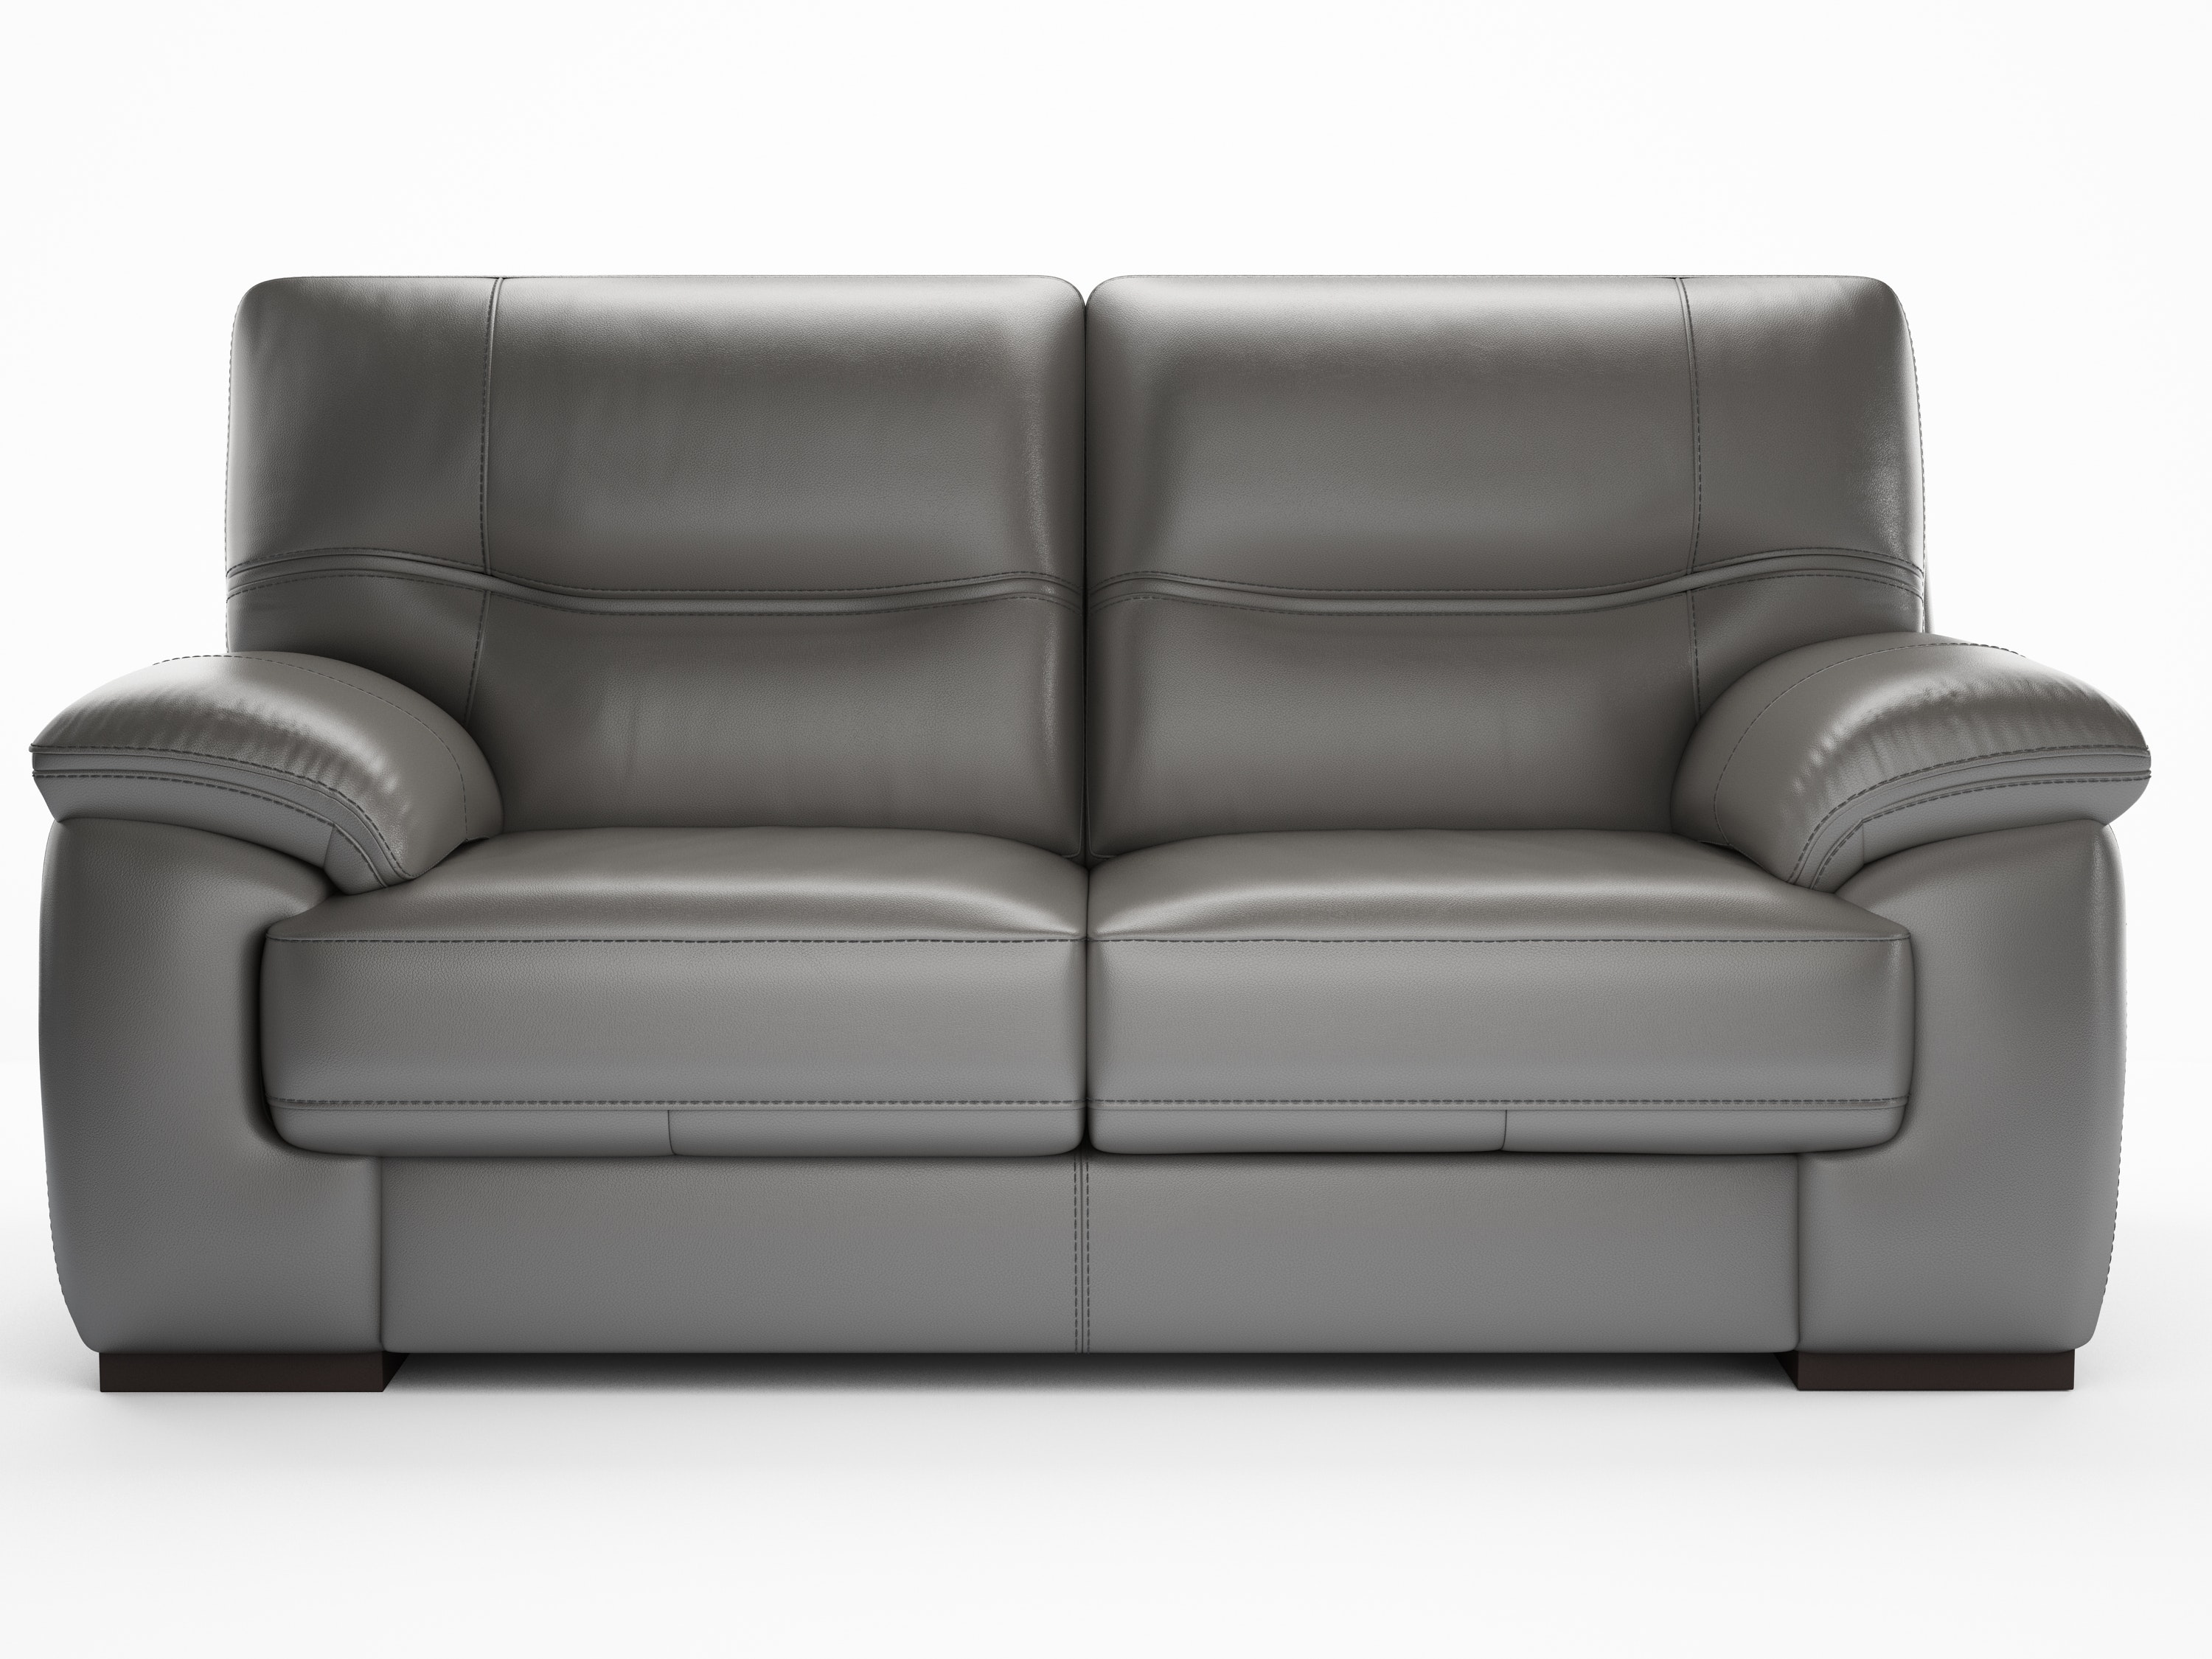 Fyshwick 2-Seater Sofa | Colour options